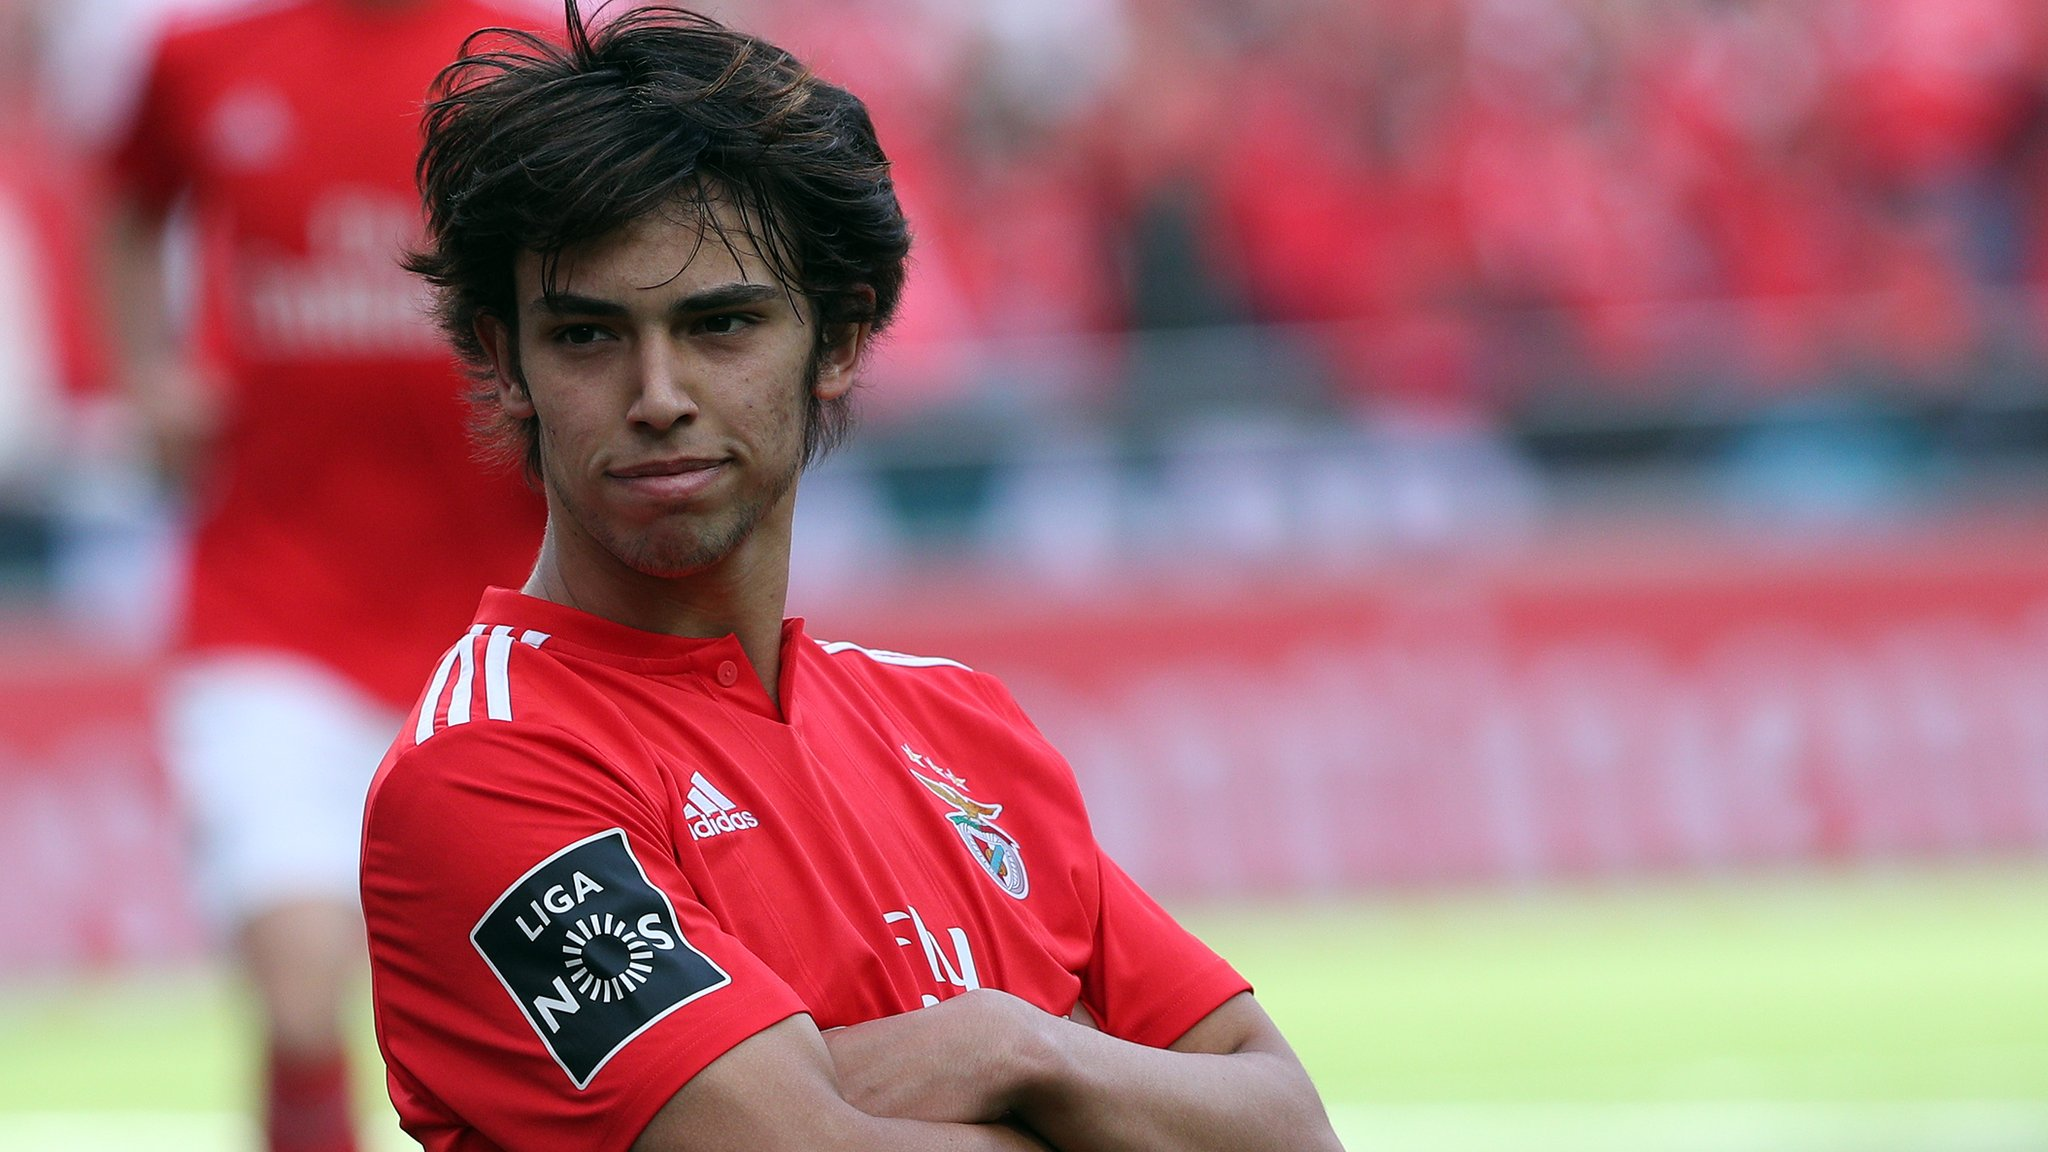 Joao Felix: The Benfica wonderkid who has been called the most exciting player since Cristiano Ronaldo